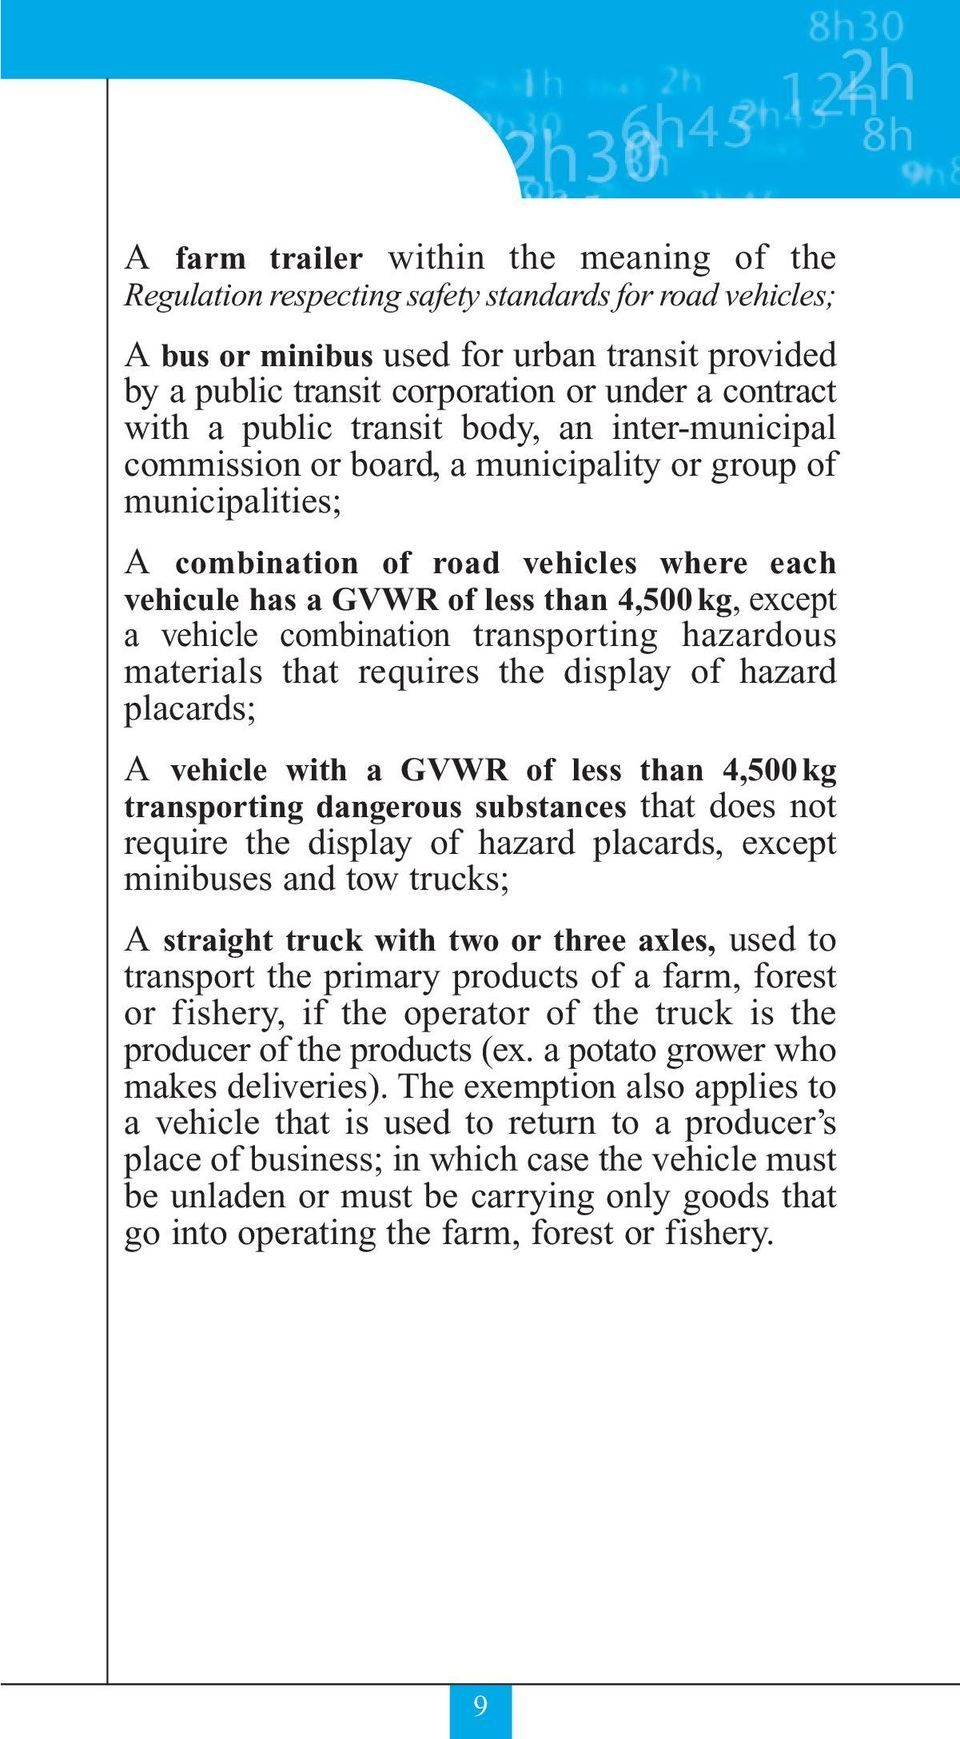 except a vehicle combination transporting hazardous materials that requires the display of hazard placards; A vehicle with a GVWR of less than 4,500 kg transporting dangerous substances that does not